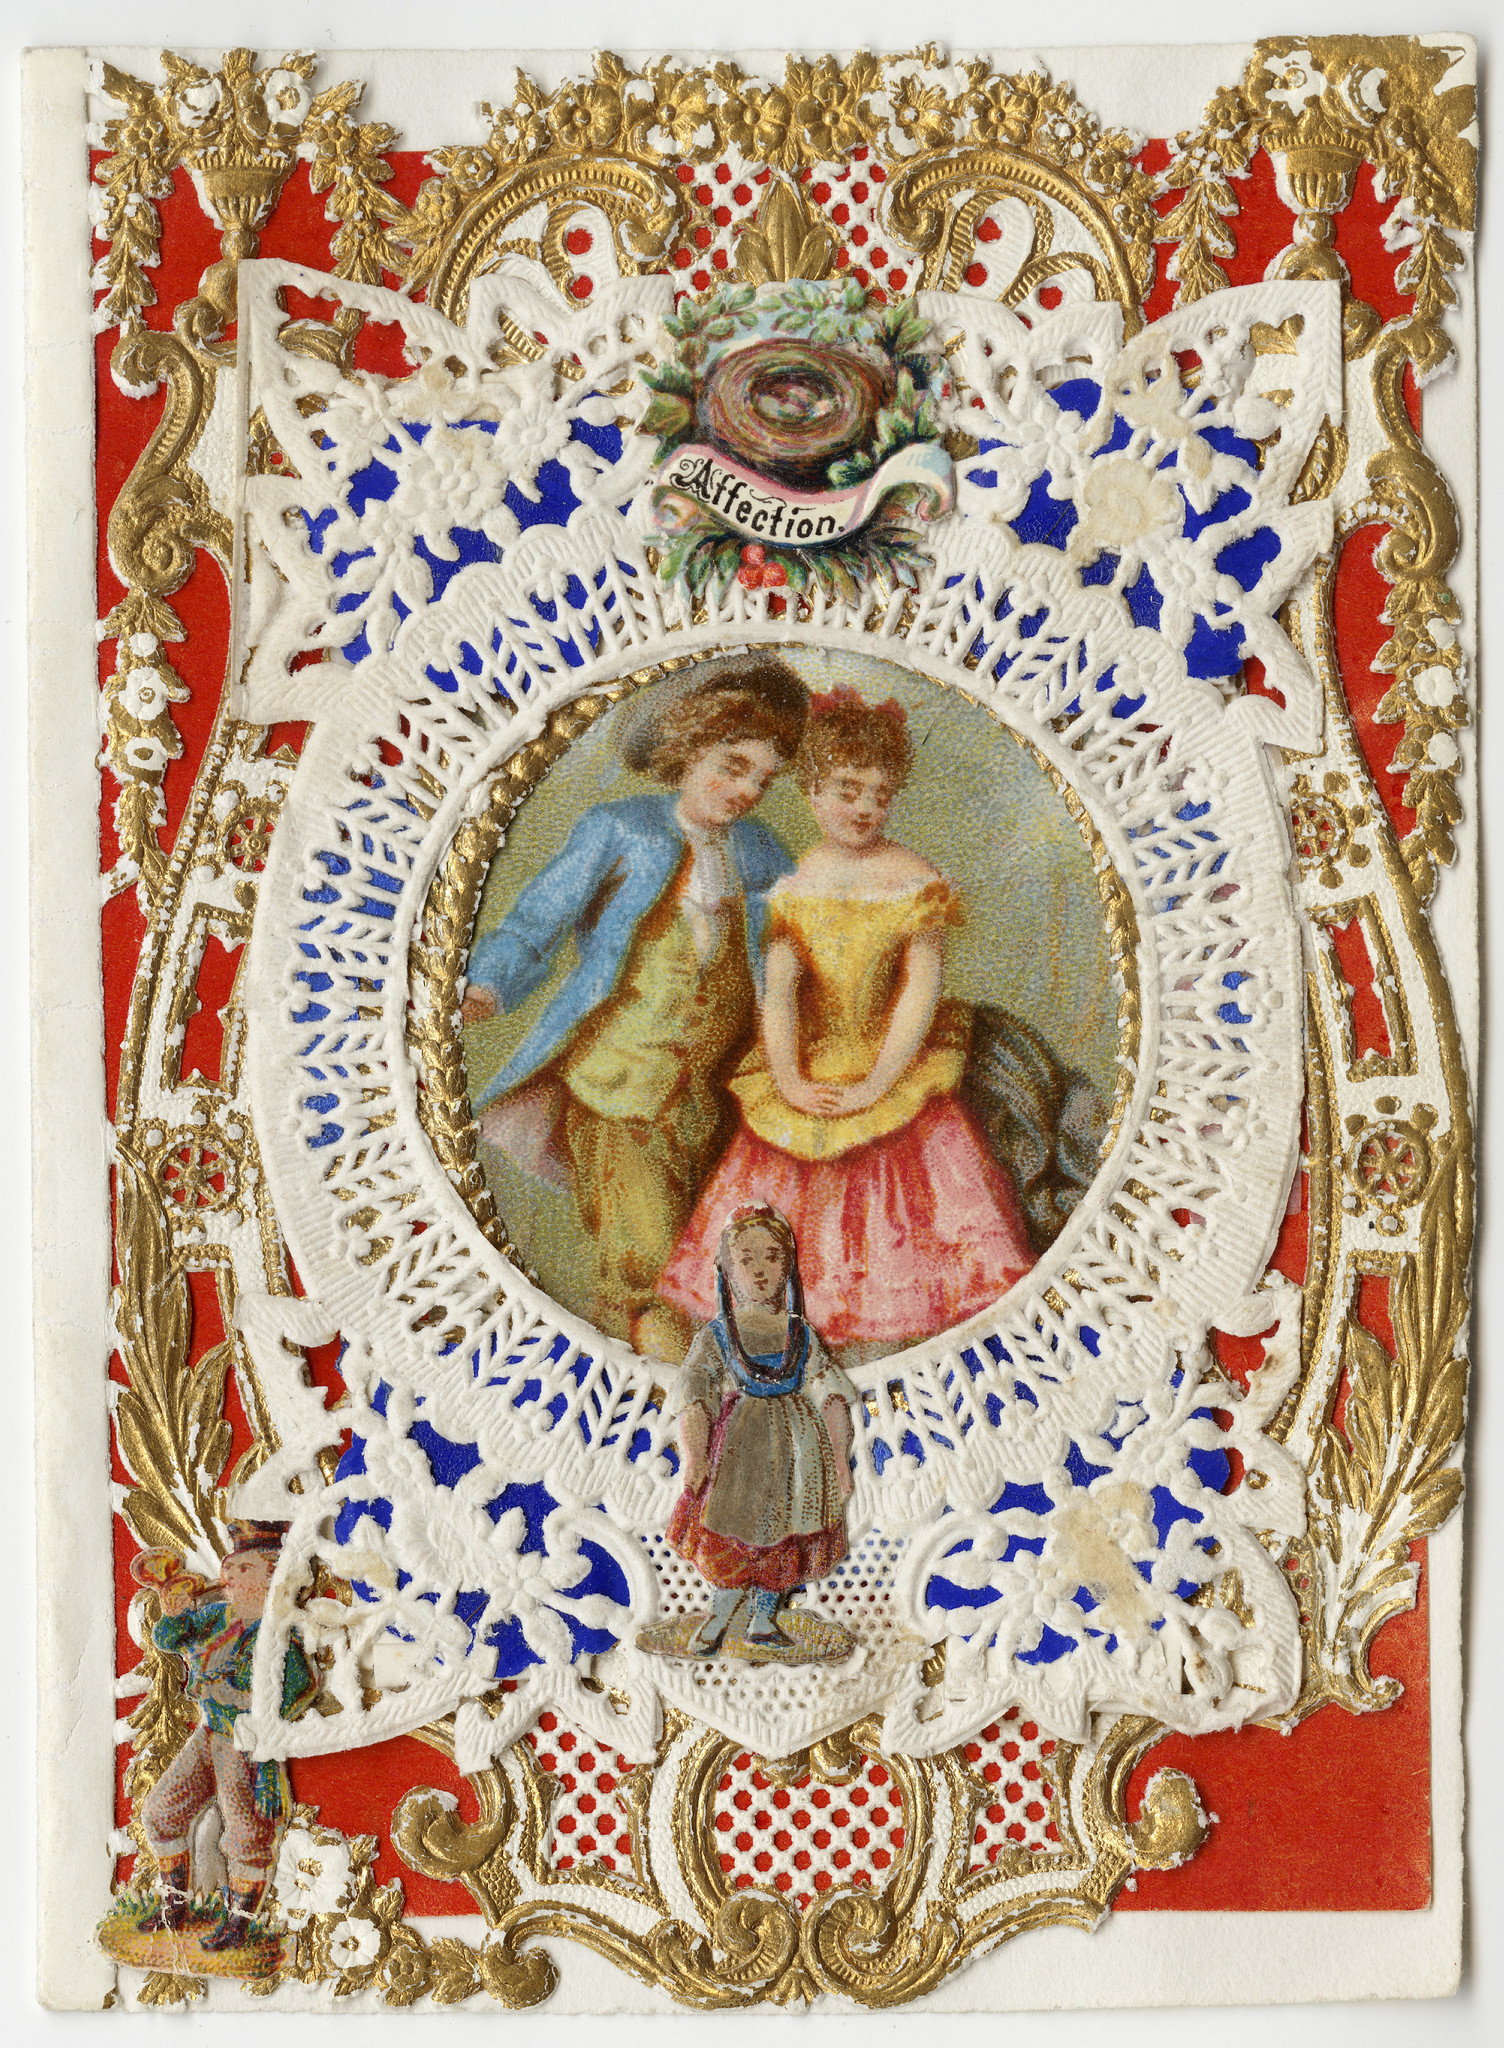 From british antique dealers, genuine victorian valentines cards shipping throughout the uk and. Valentine's Day in the Victorian Era - 5-Minute History